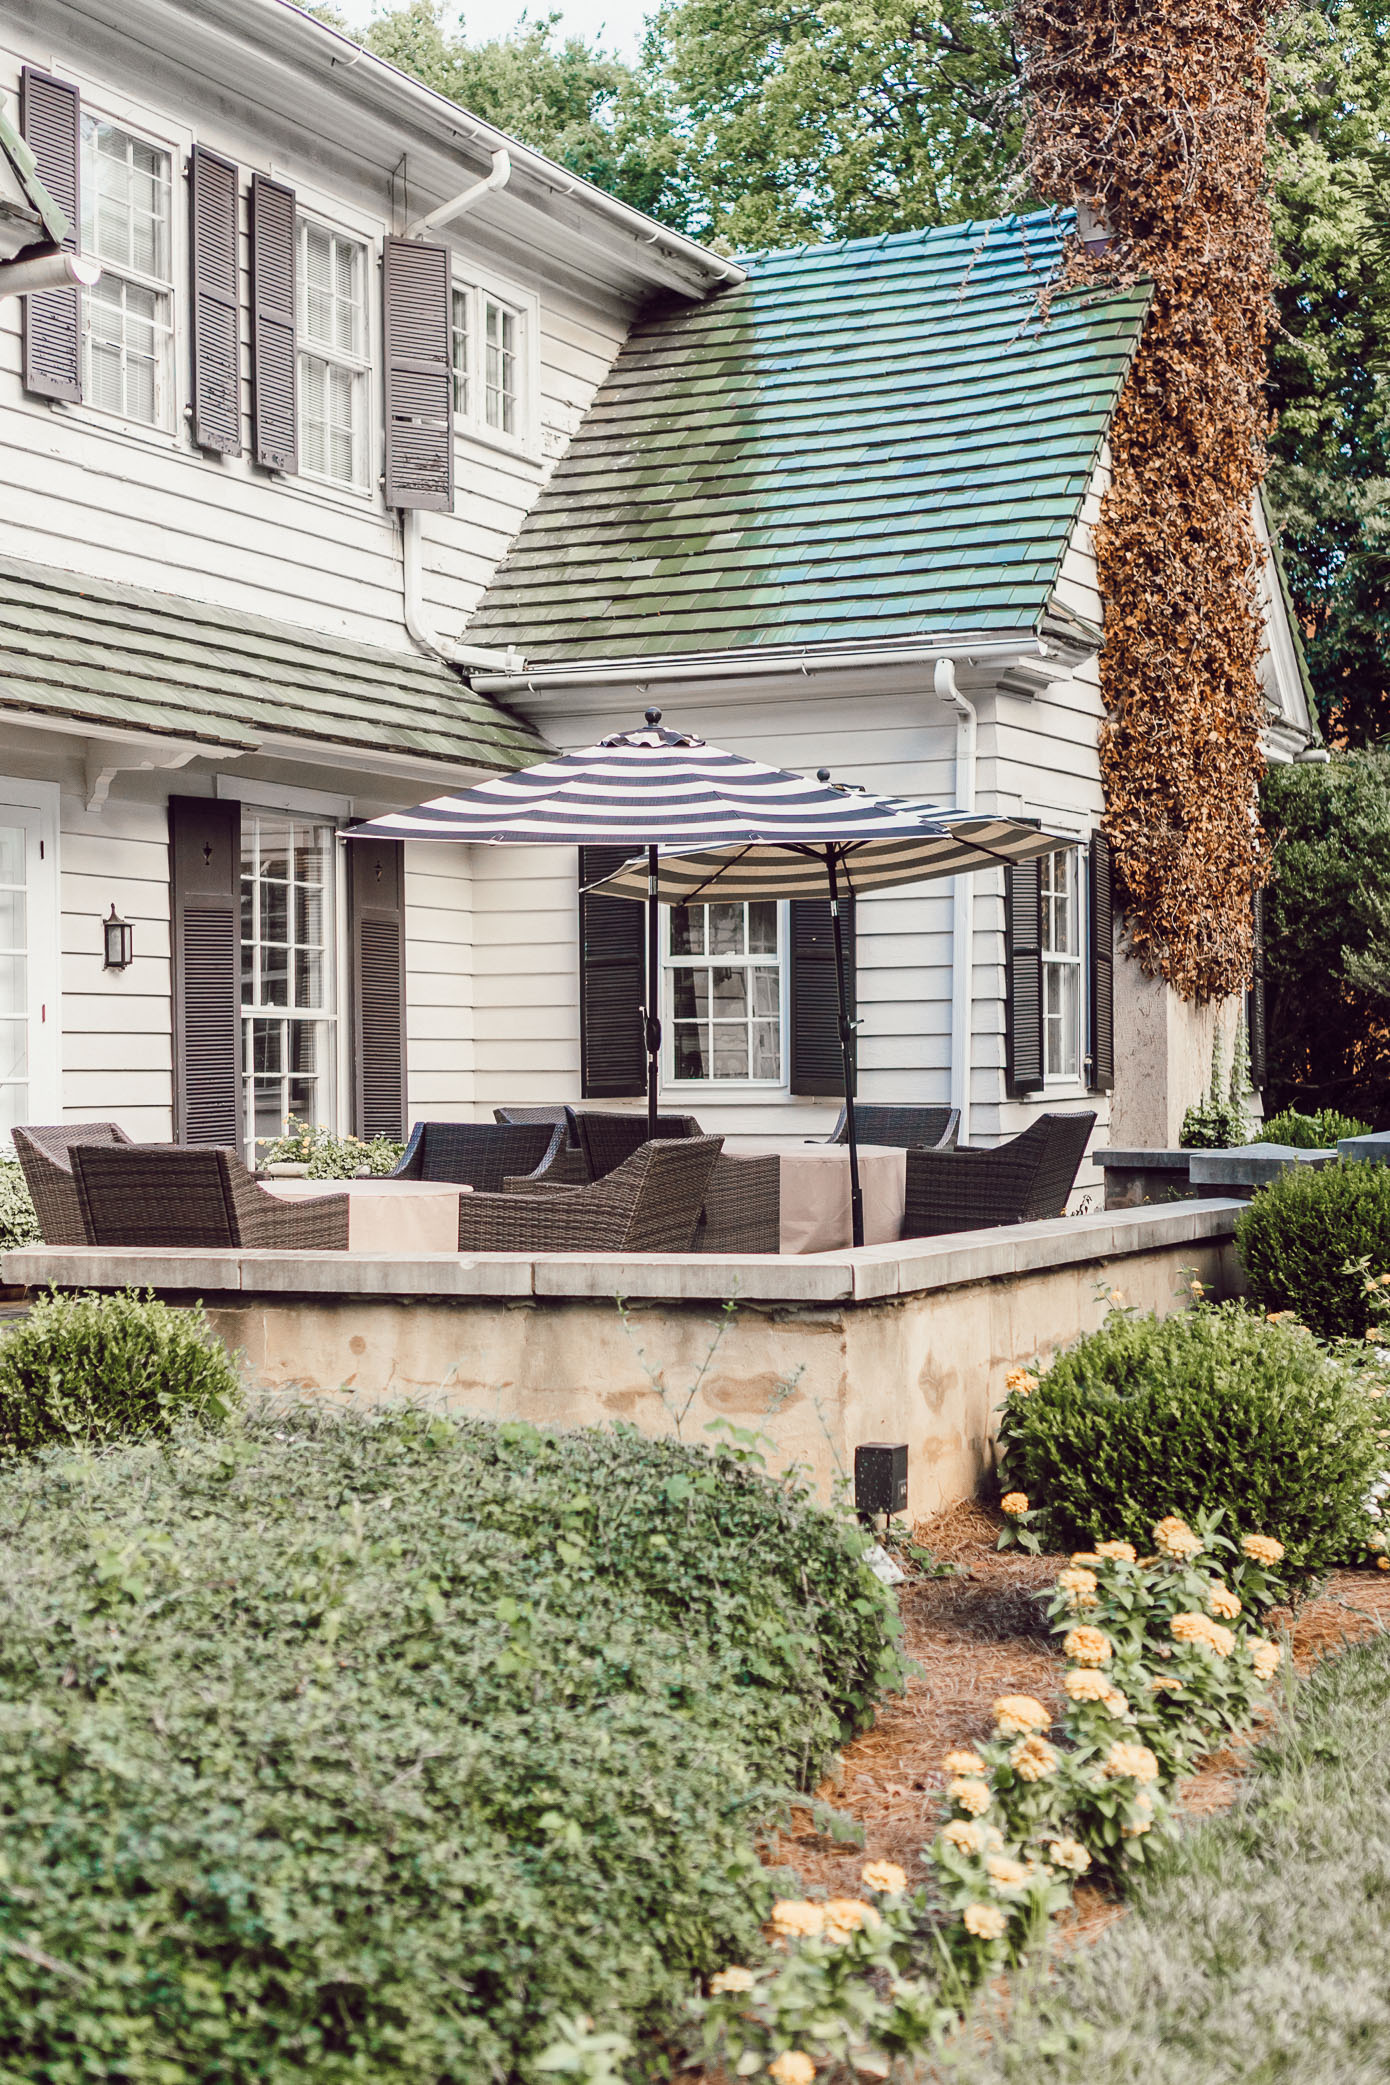 The Morehead Inn Charlotte NC | NC Bed & Breakfast featured on Louella Reese Life & Style Blog